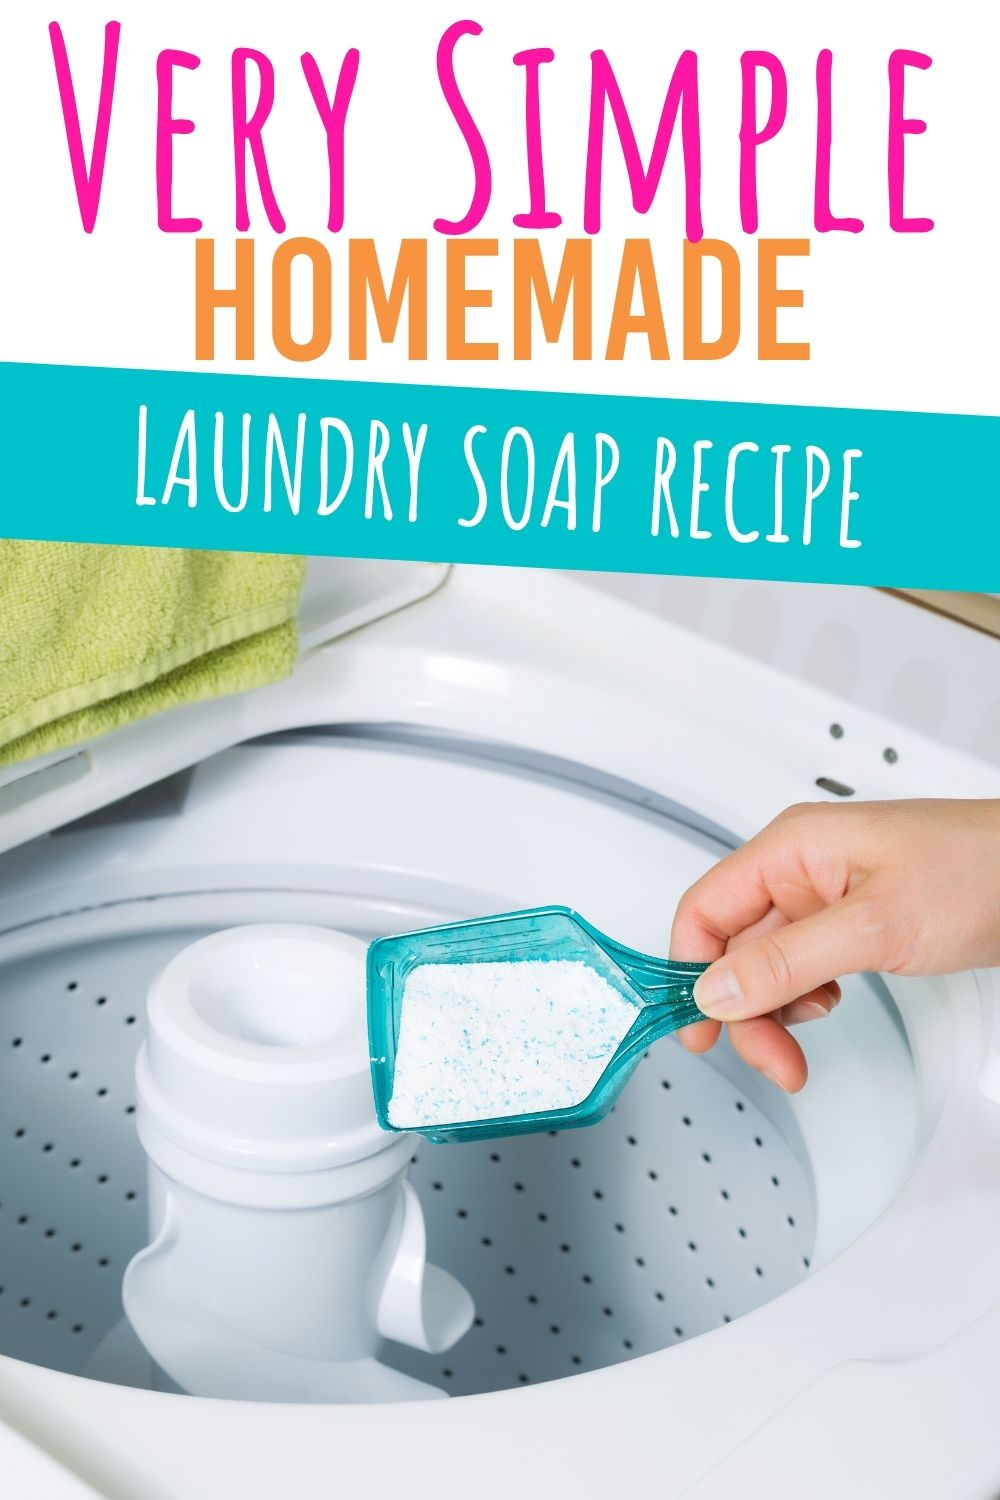 Learn how to make your own homemade laundry soap. This DIY laundry soap is simple to make with common found ingredients. #diy #diylaundrysoap #laundry #laundrysoap #homemadelaundry #naturalcleaning #naturalcleaningsupplies via @homebyjenn